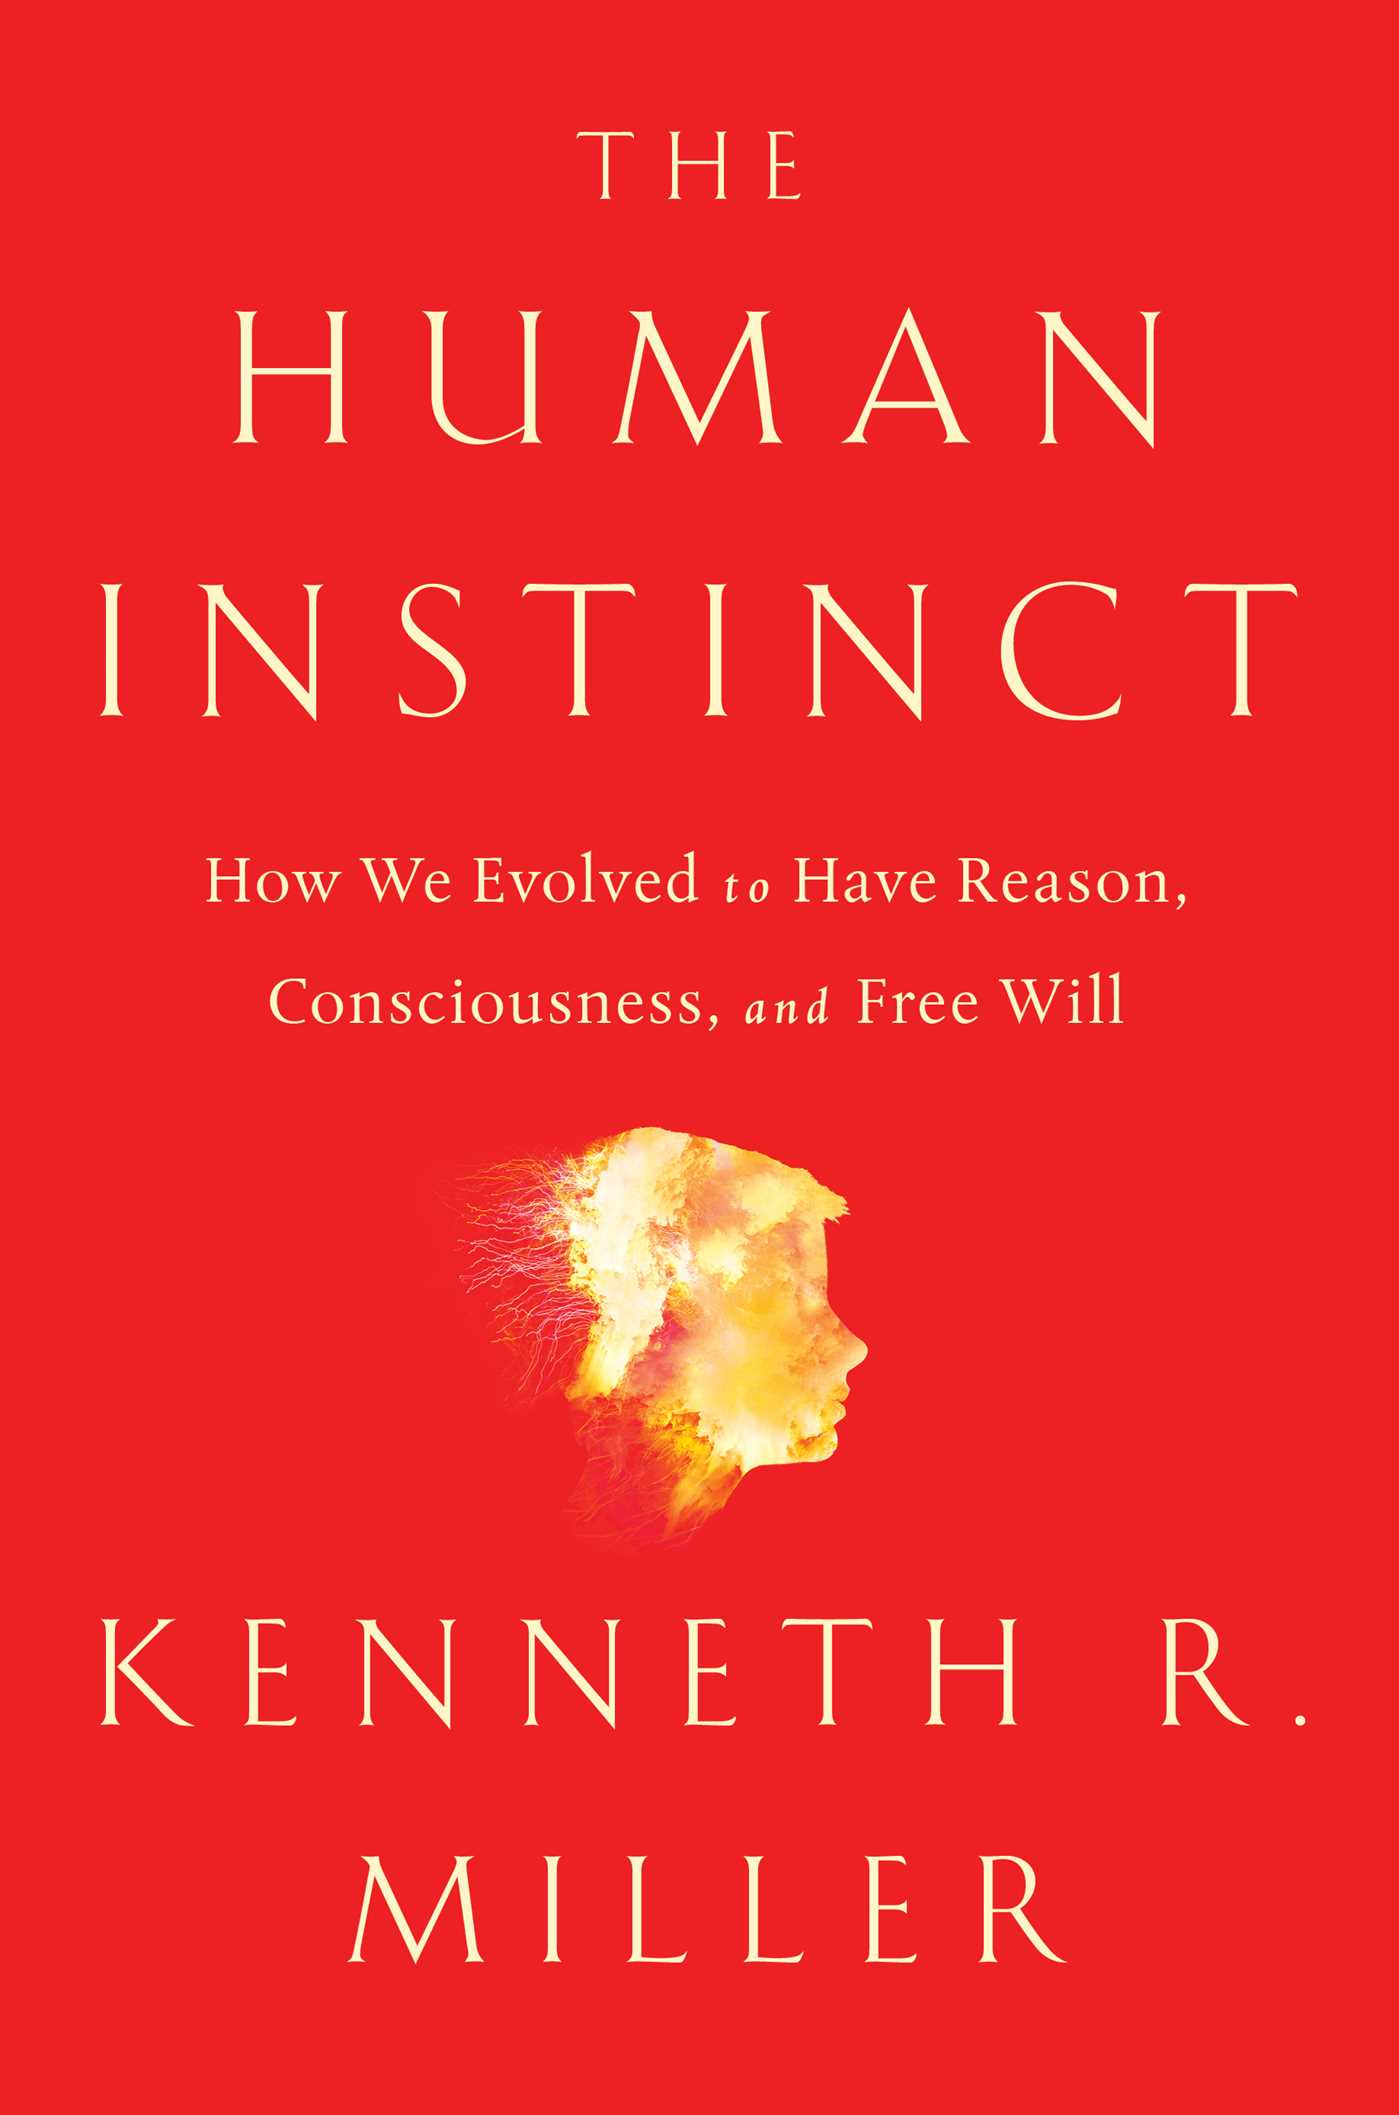 Image result for the human instinct kenneth miller